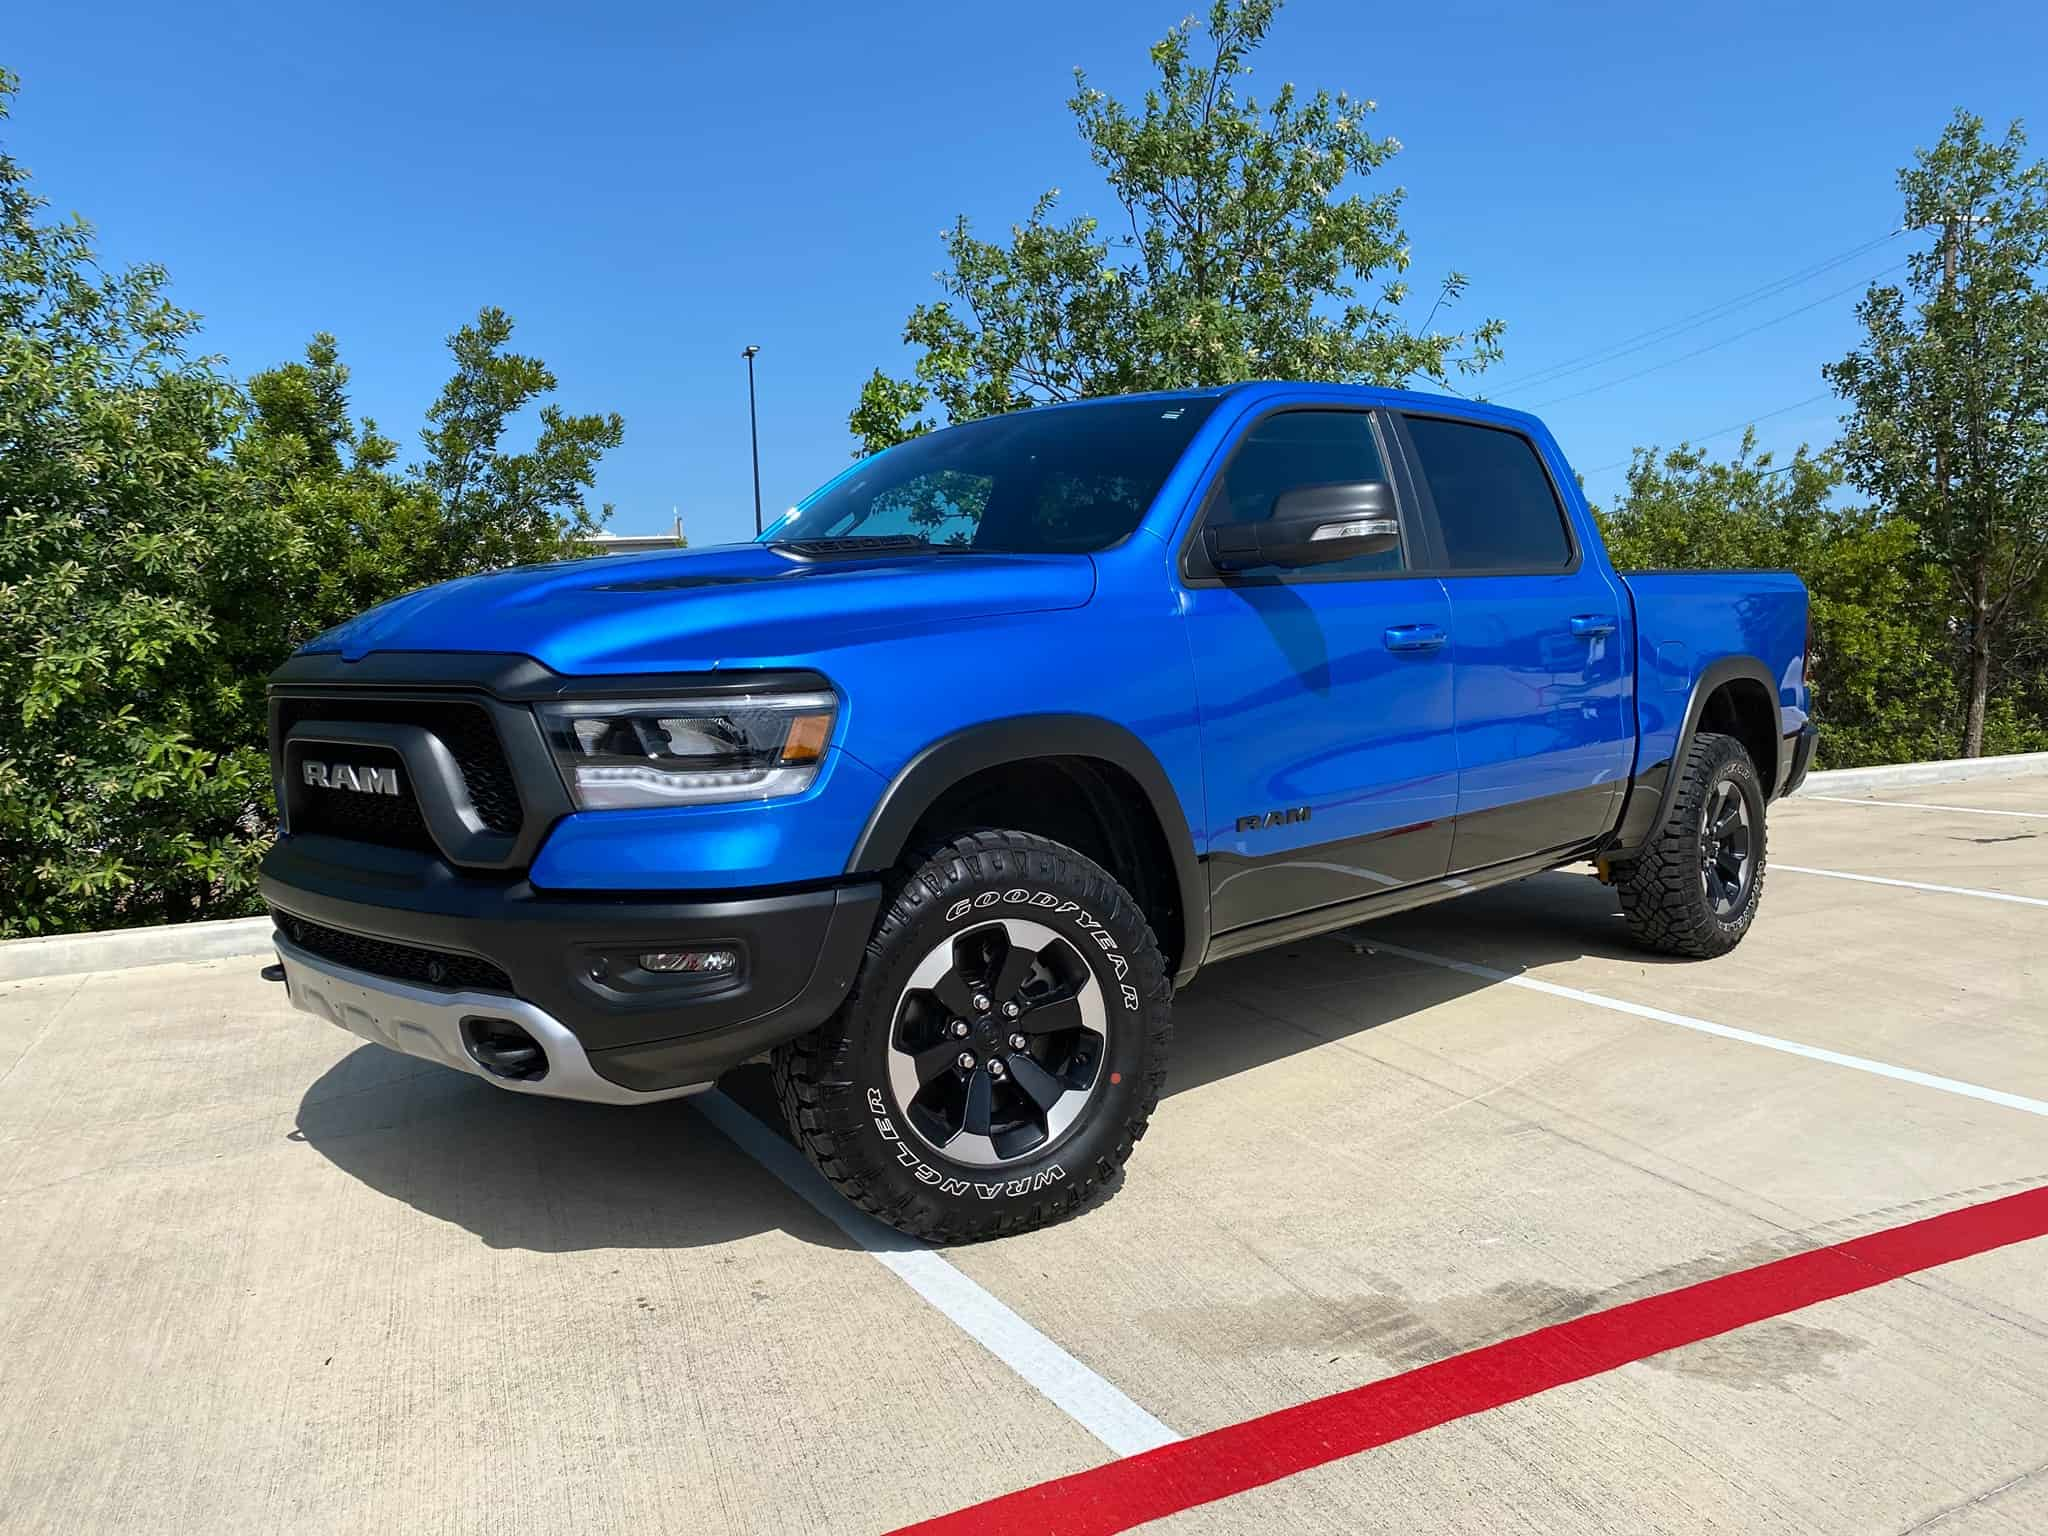 2021 Ram 1500 Rebel hydro blue xpel ultimate plus full front truck paint protection wrap